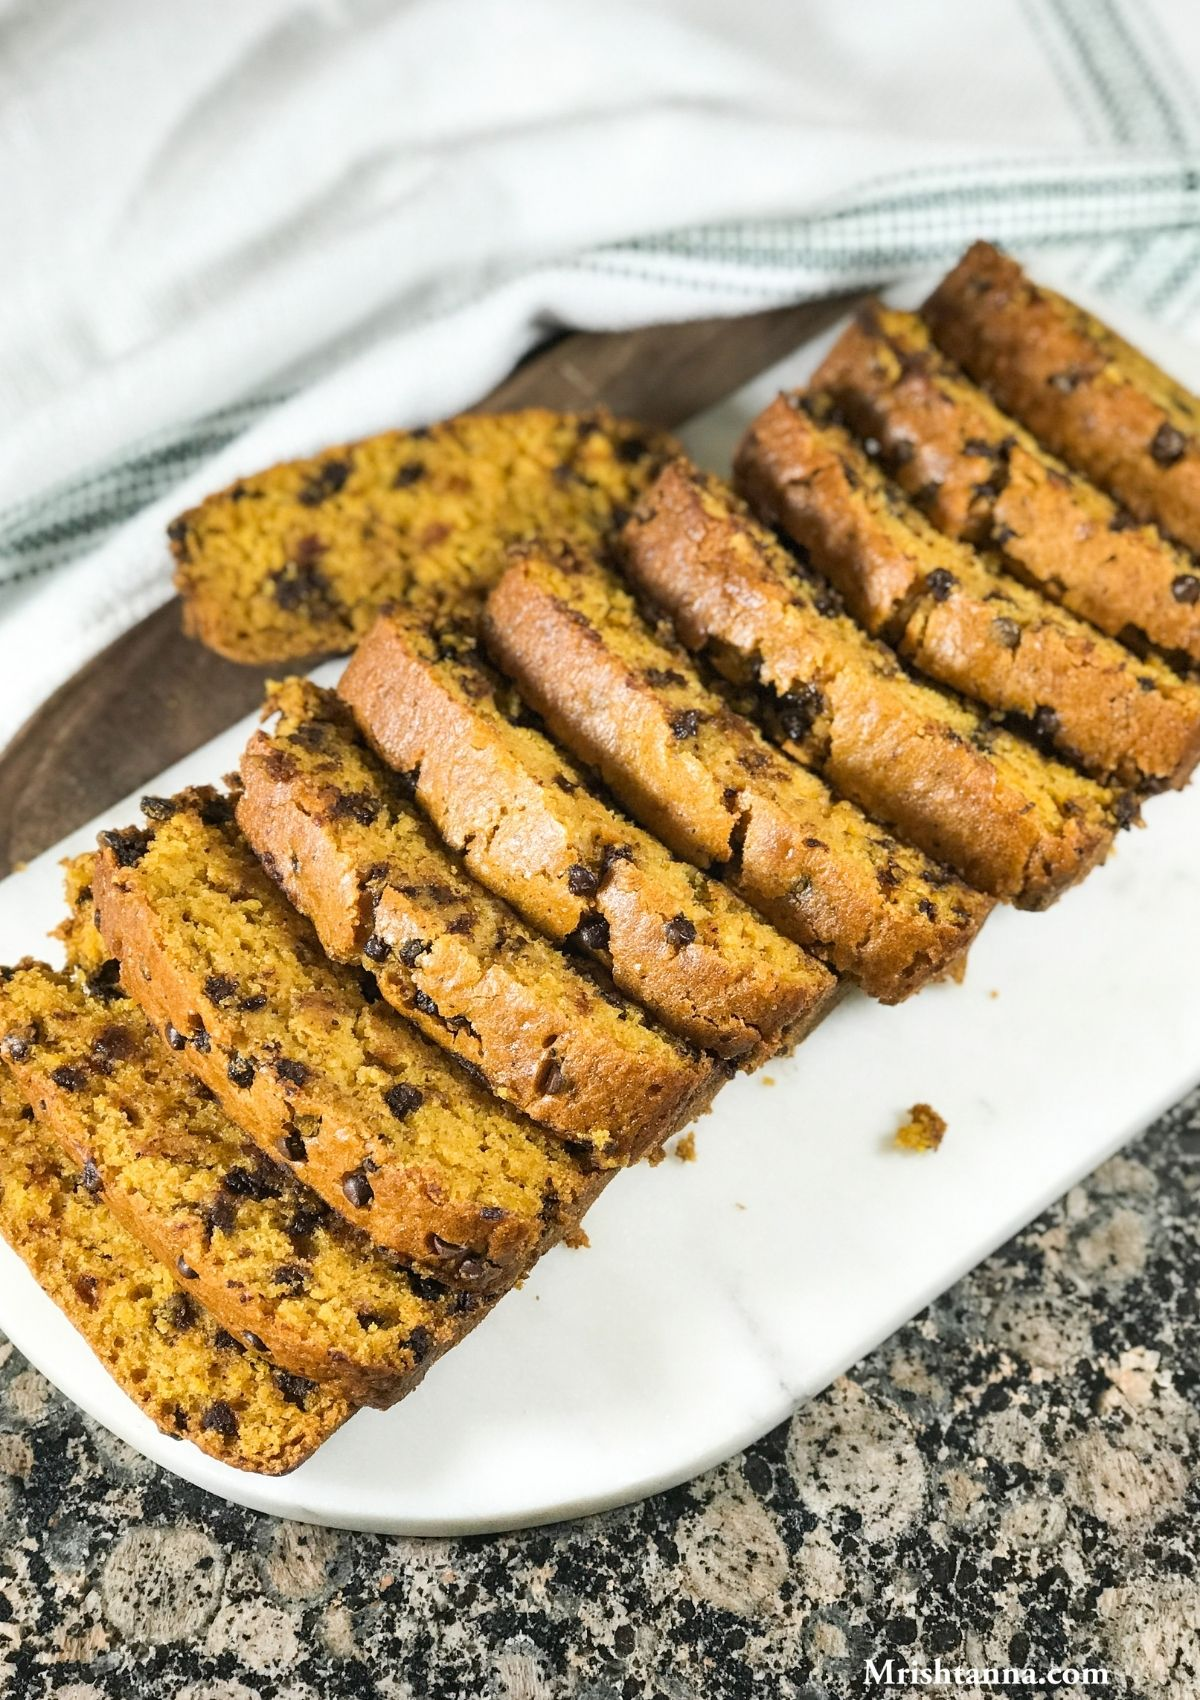 Vegan Pumpkin bread is sliced and placed on the white surface